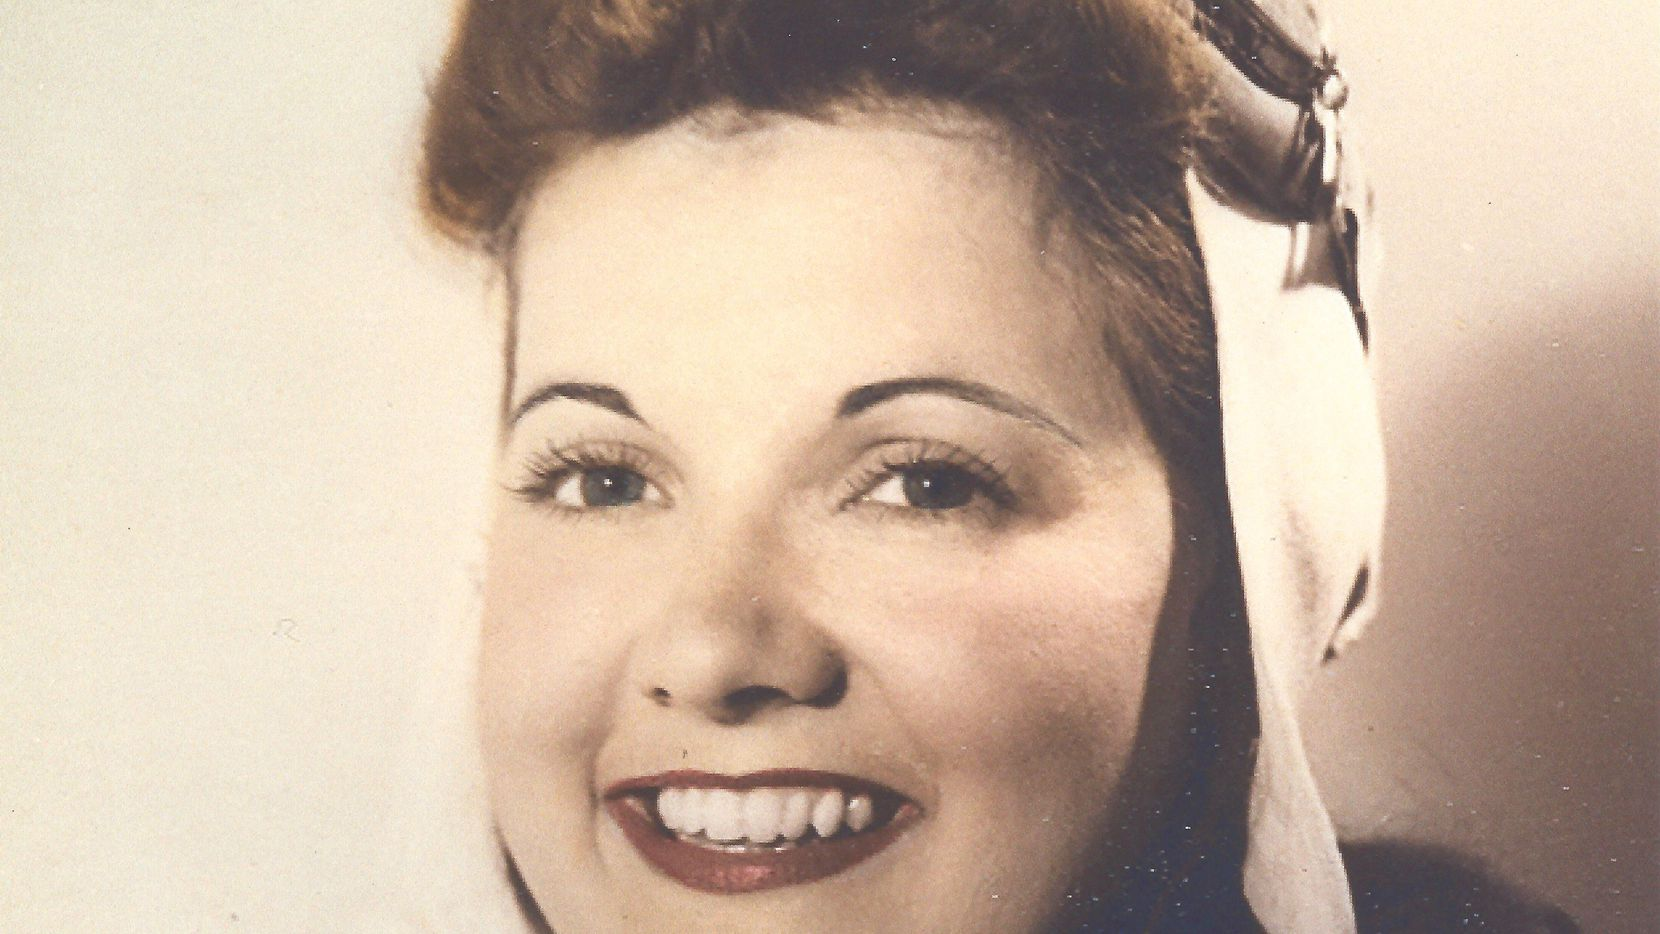 Elaine Harmon pictured in 1944 wearing her bomber jacket. Harmon was a member of the Women Airforce Service Pilots, or WASP, during World War II. On Tuesday, Nov. 13, Harmon's granddaughter Erin Miller will be in Austin to testify against the Texas State Board of Education's decision to eliminate the WASP from the public school social studies curriculum.